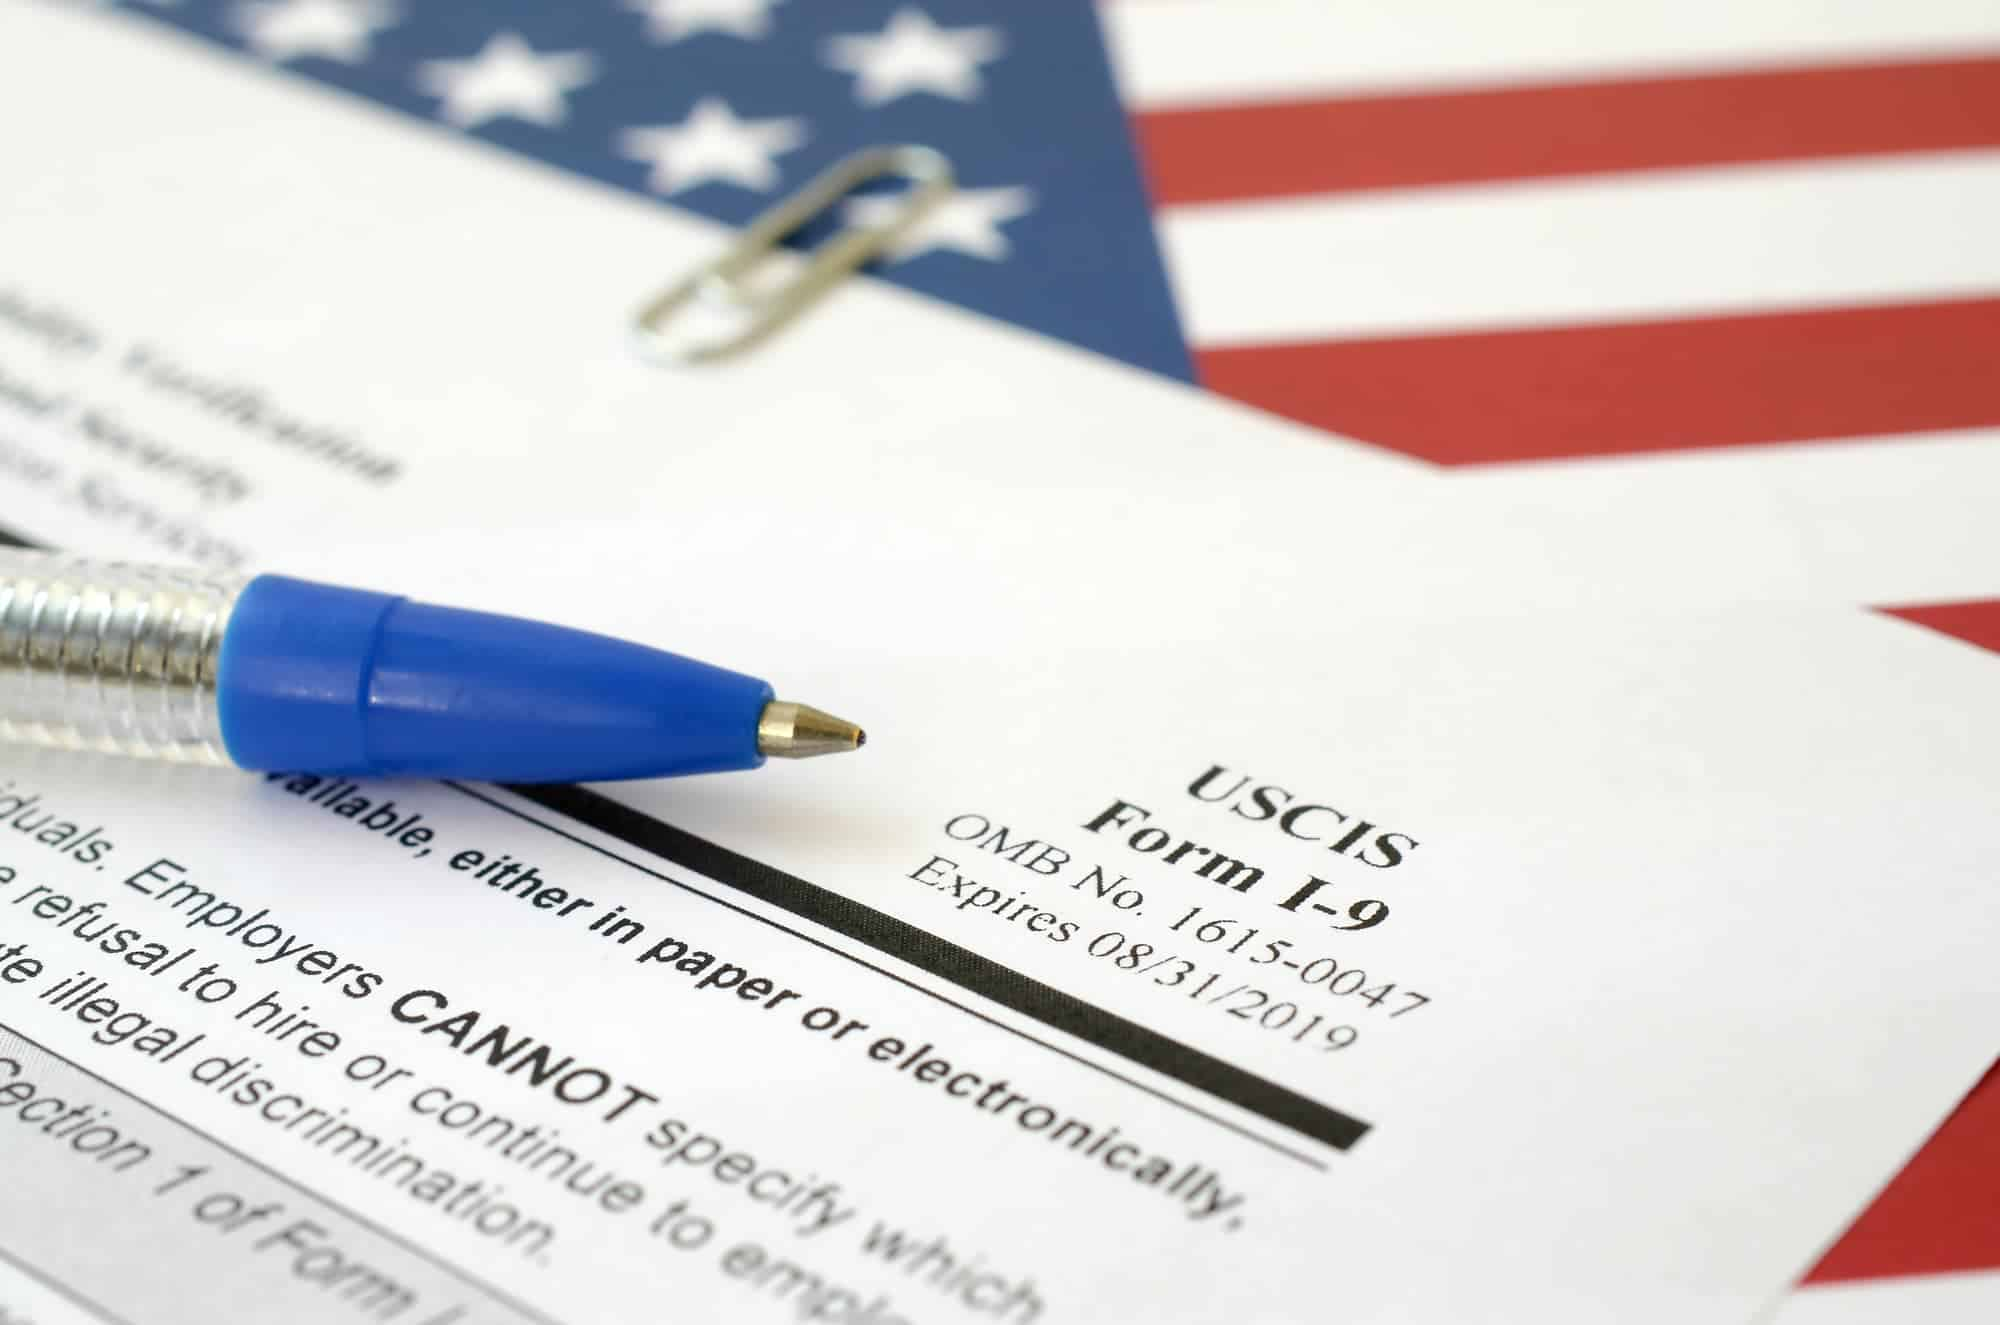 I-9 Employment Eligibility Verification blank form lies on United States flag with blue pen from Department of Homeland Security close up